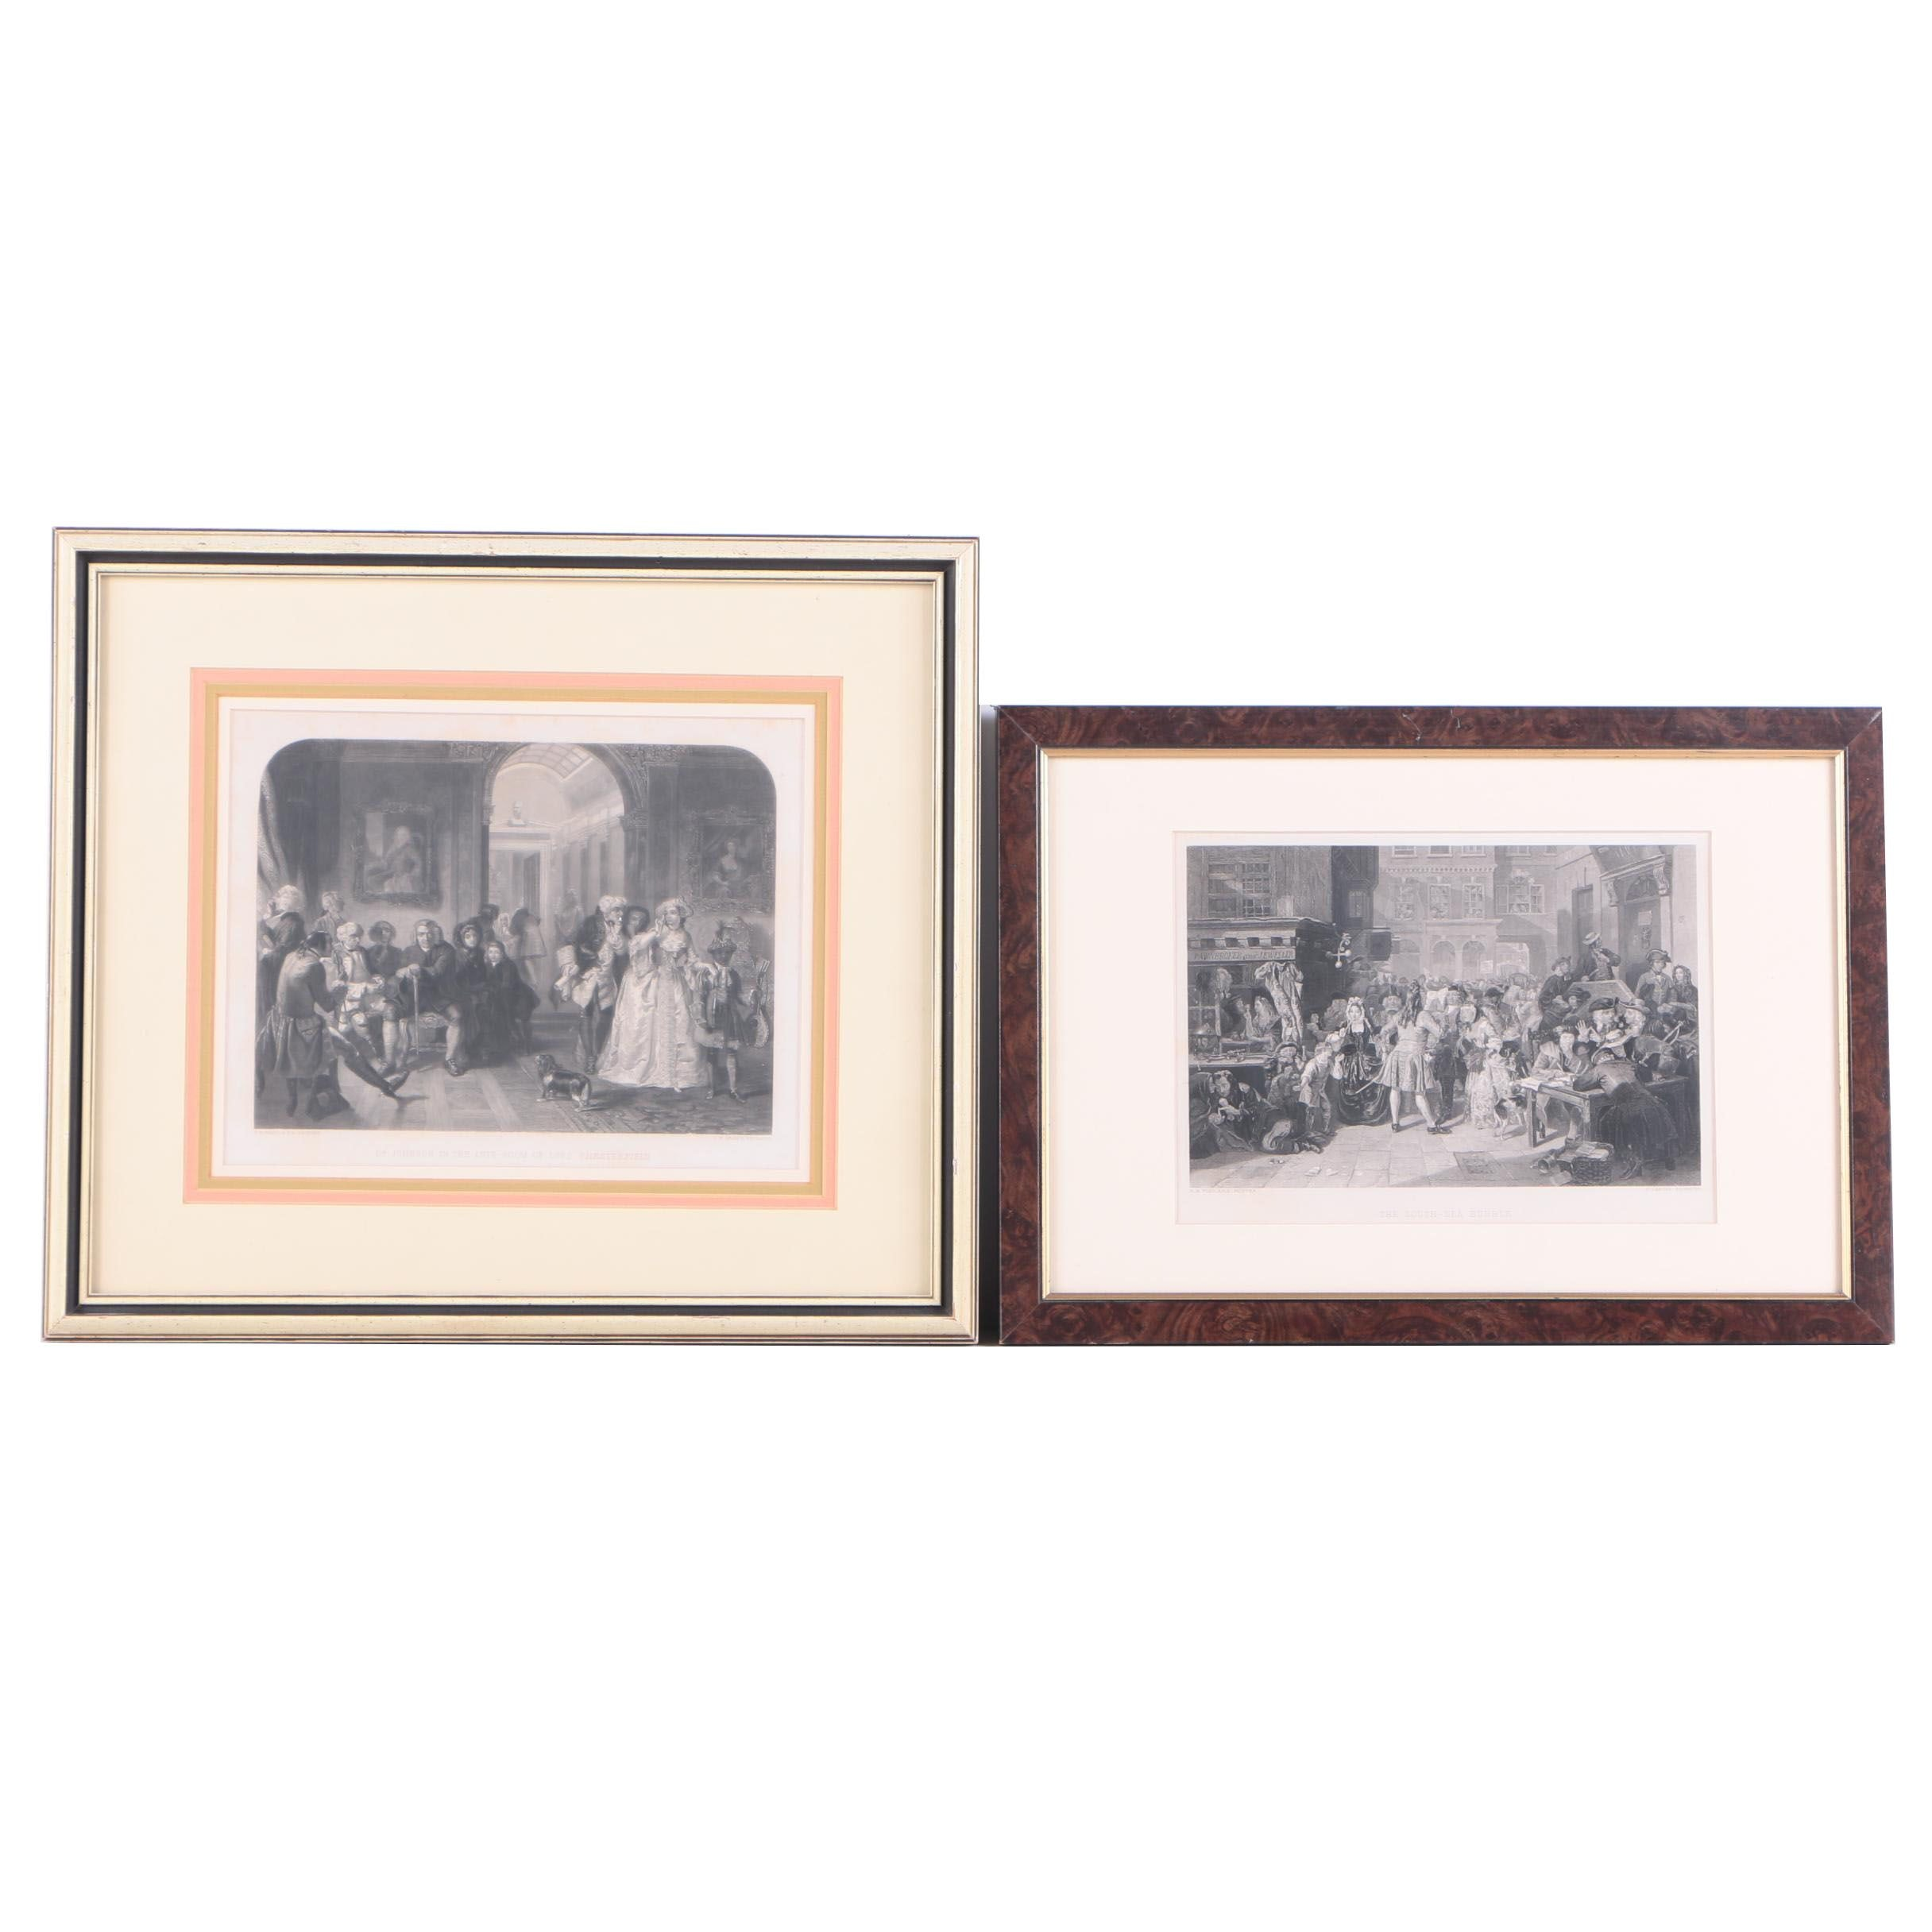 J. Carter and C.W. Sharpe Engravings on Paper